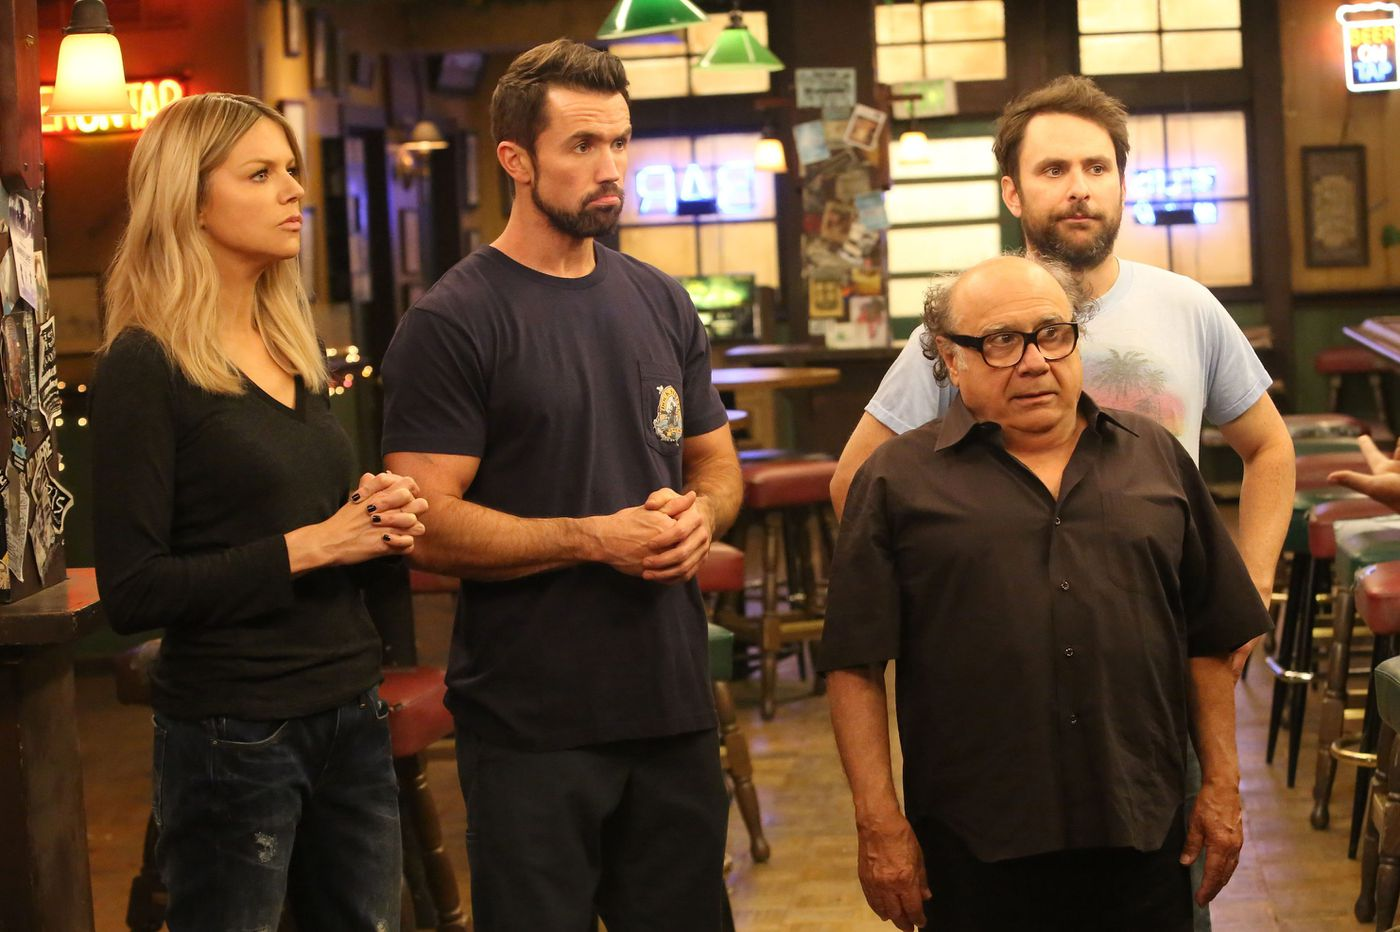 'It's Always Sunny': Will Dennis be back? Why is Mac ripped? Philly's Rob McElhenney, cast talk about 13th season